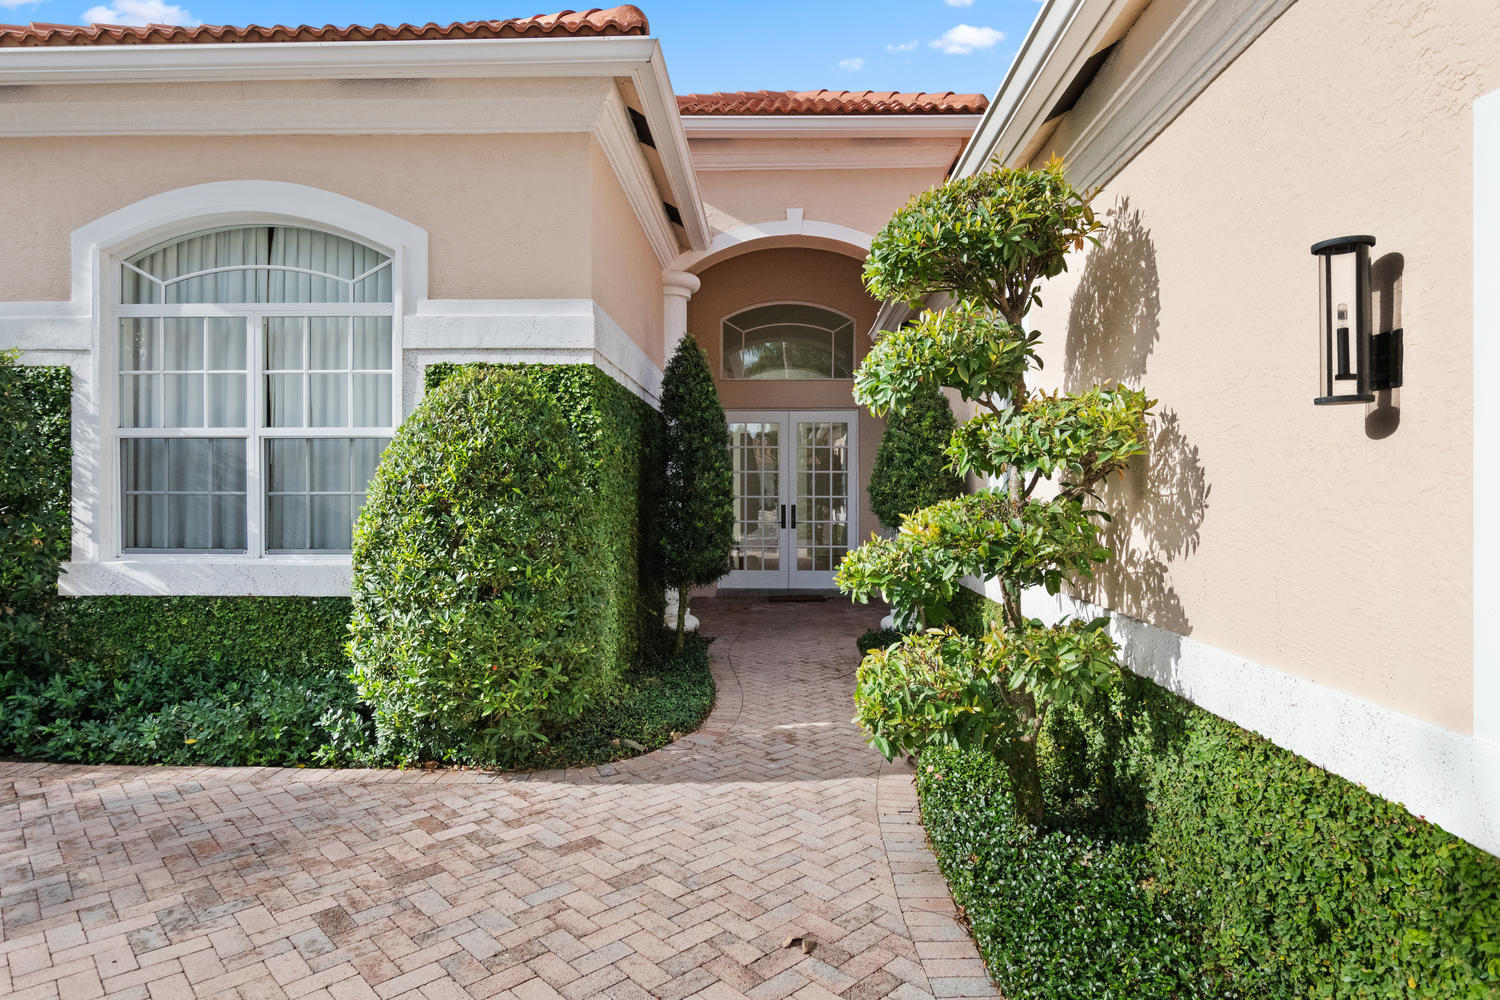 14334 Stroller Way, Wellington, Florida 33414, 5 Bedrooms Bedrooms, ,4 BathroomsBathrooms,Single Family,For Sale,PALM BEACH POLO,Stroller,RX-10492532